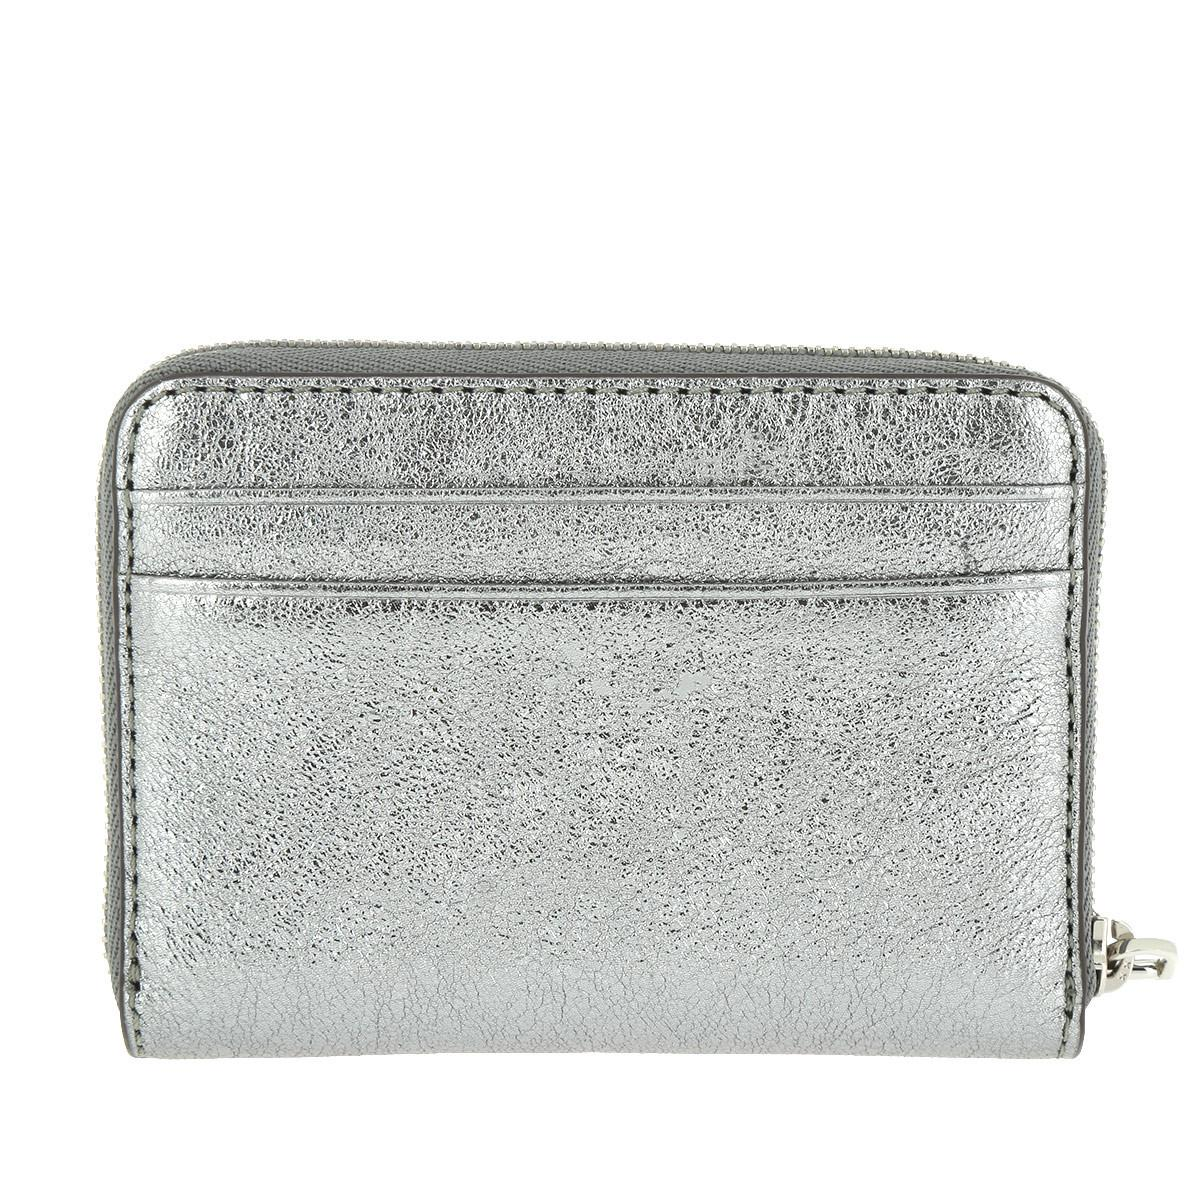 eae828c662ab88 Michael Kors Money Pieces Za Card Case Lt Pewter in Metallic - Lyst